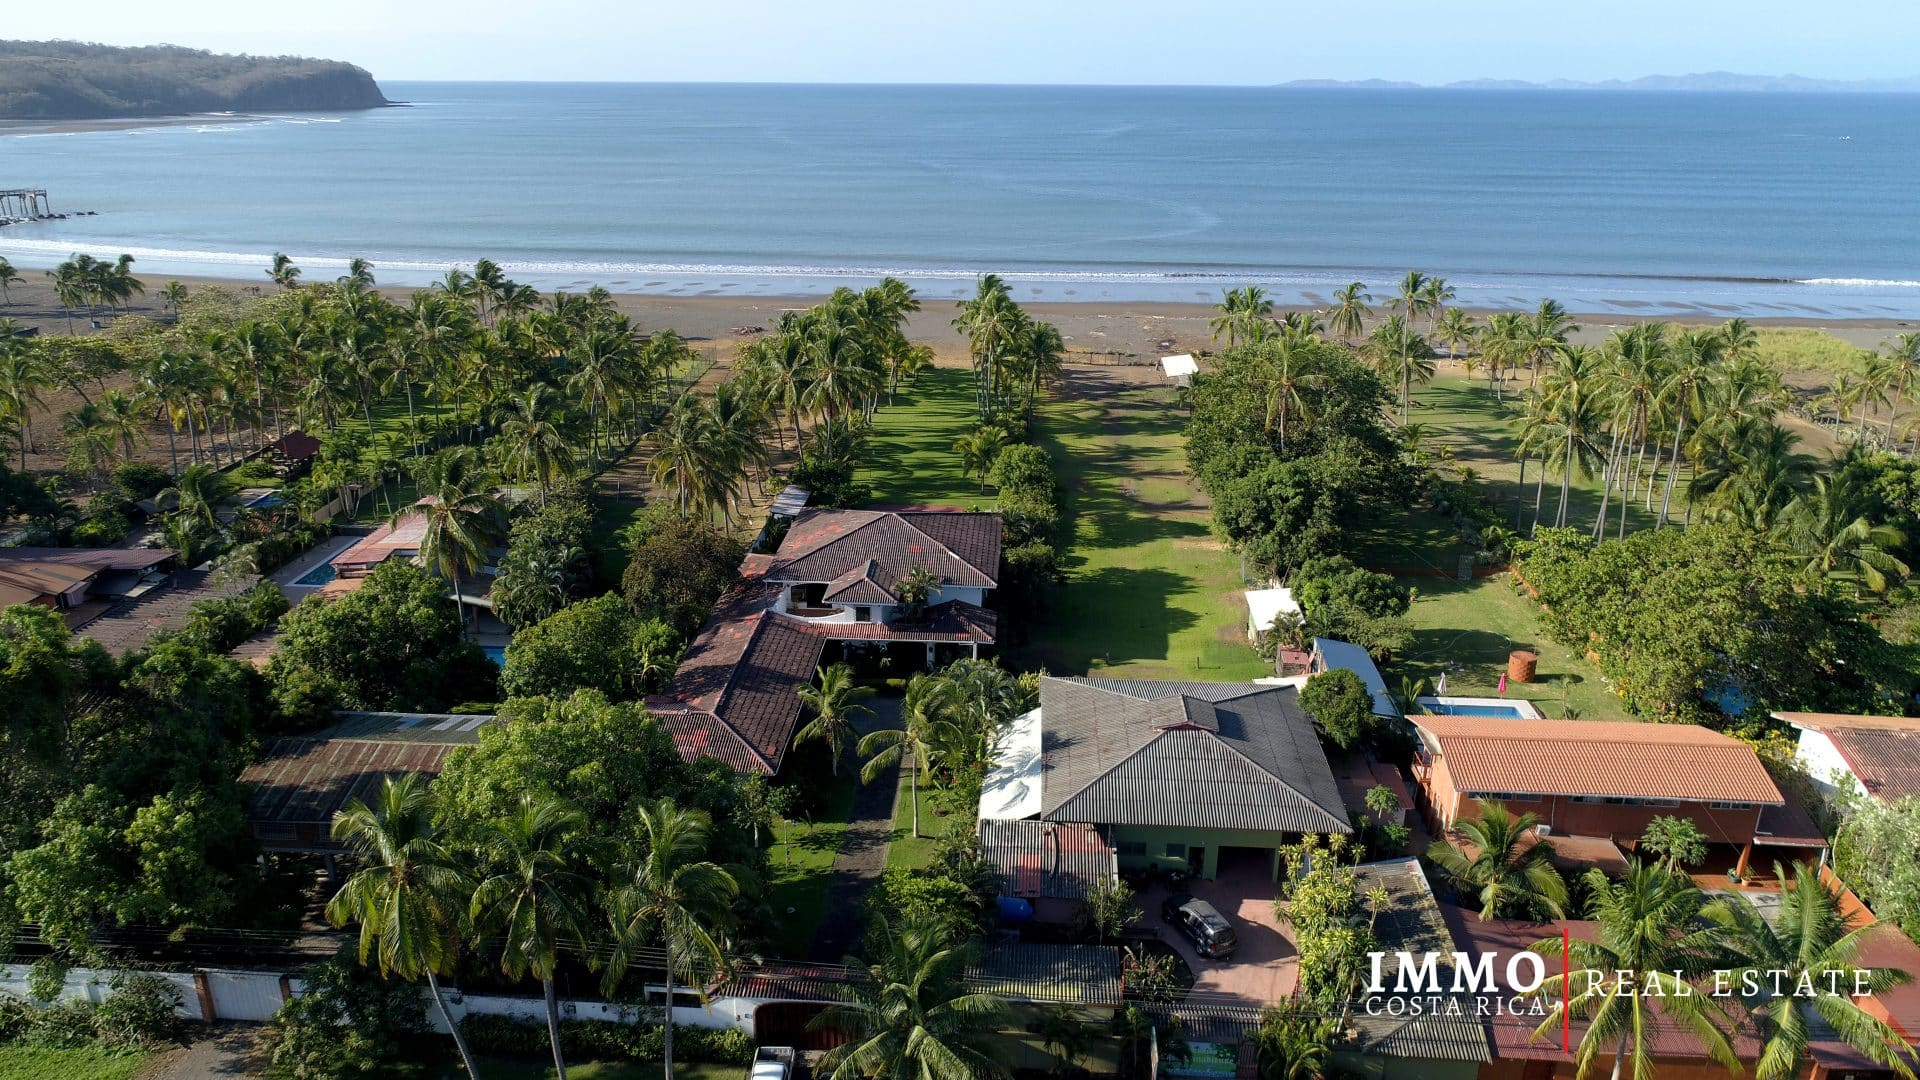 New Price! Titled Property 6 BRs Villa on the Beach in the Nicoya's Gulf